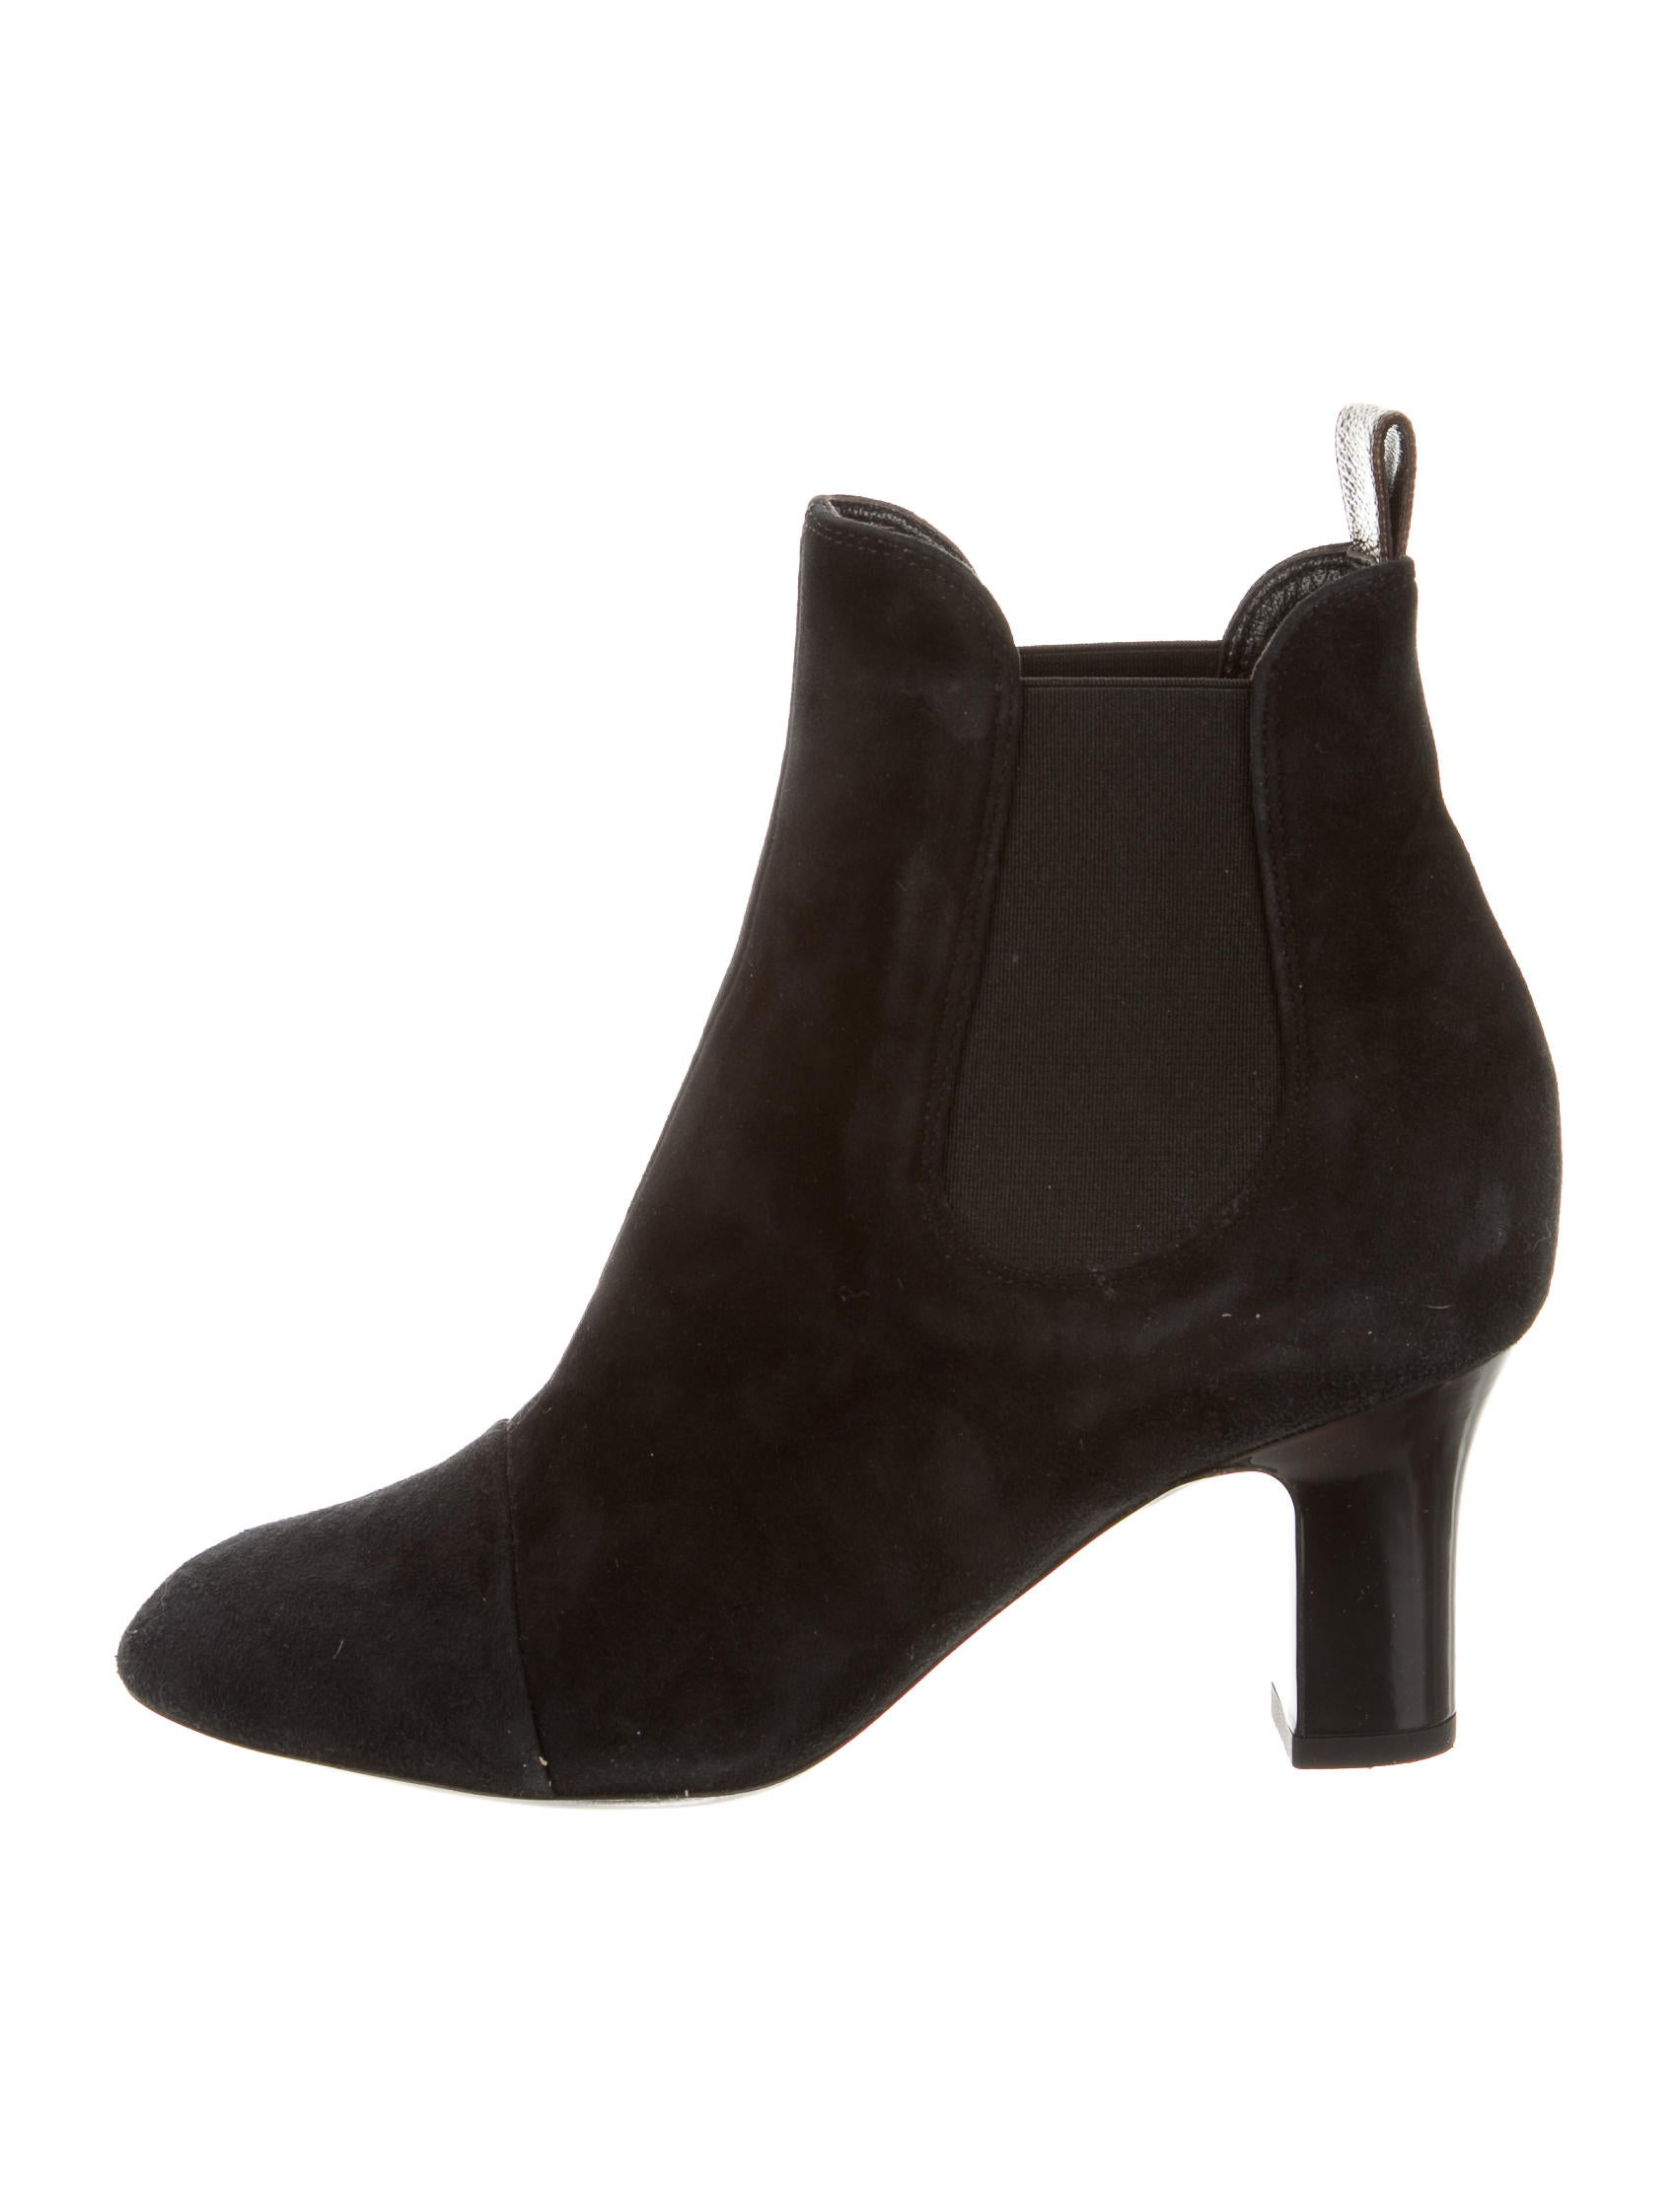 LOUIS VUITTON Suede Ankle Boots NGLcPr2jnl